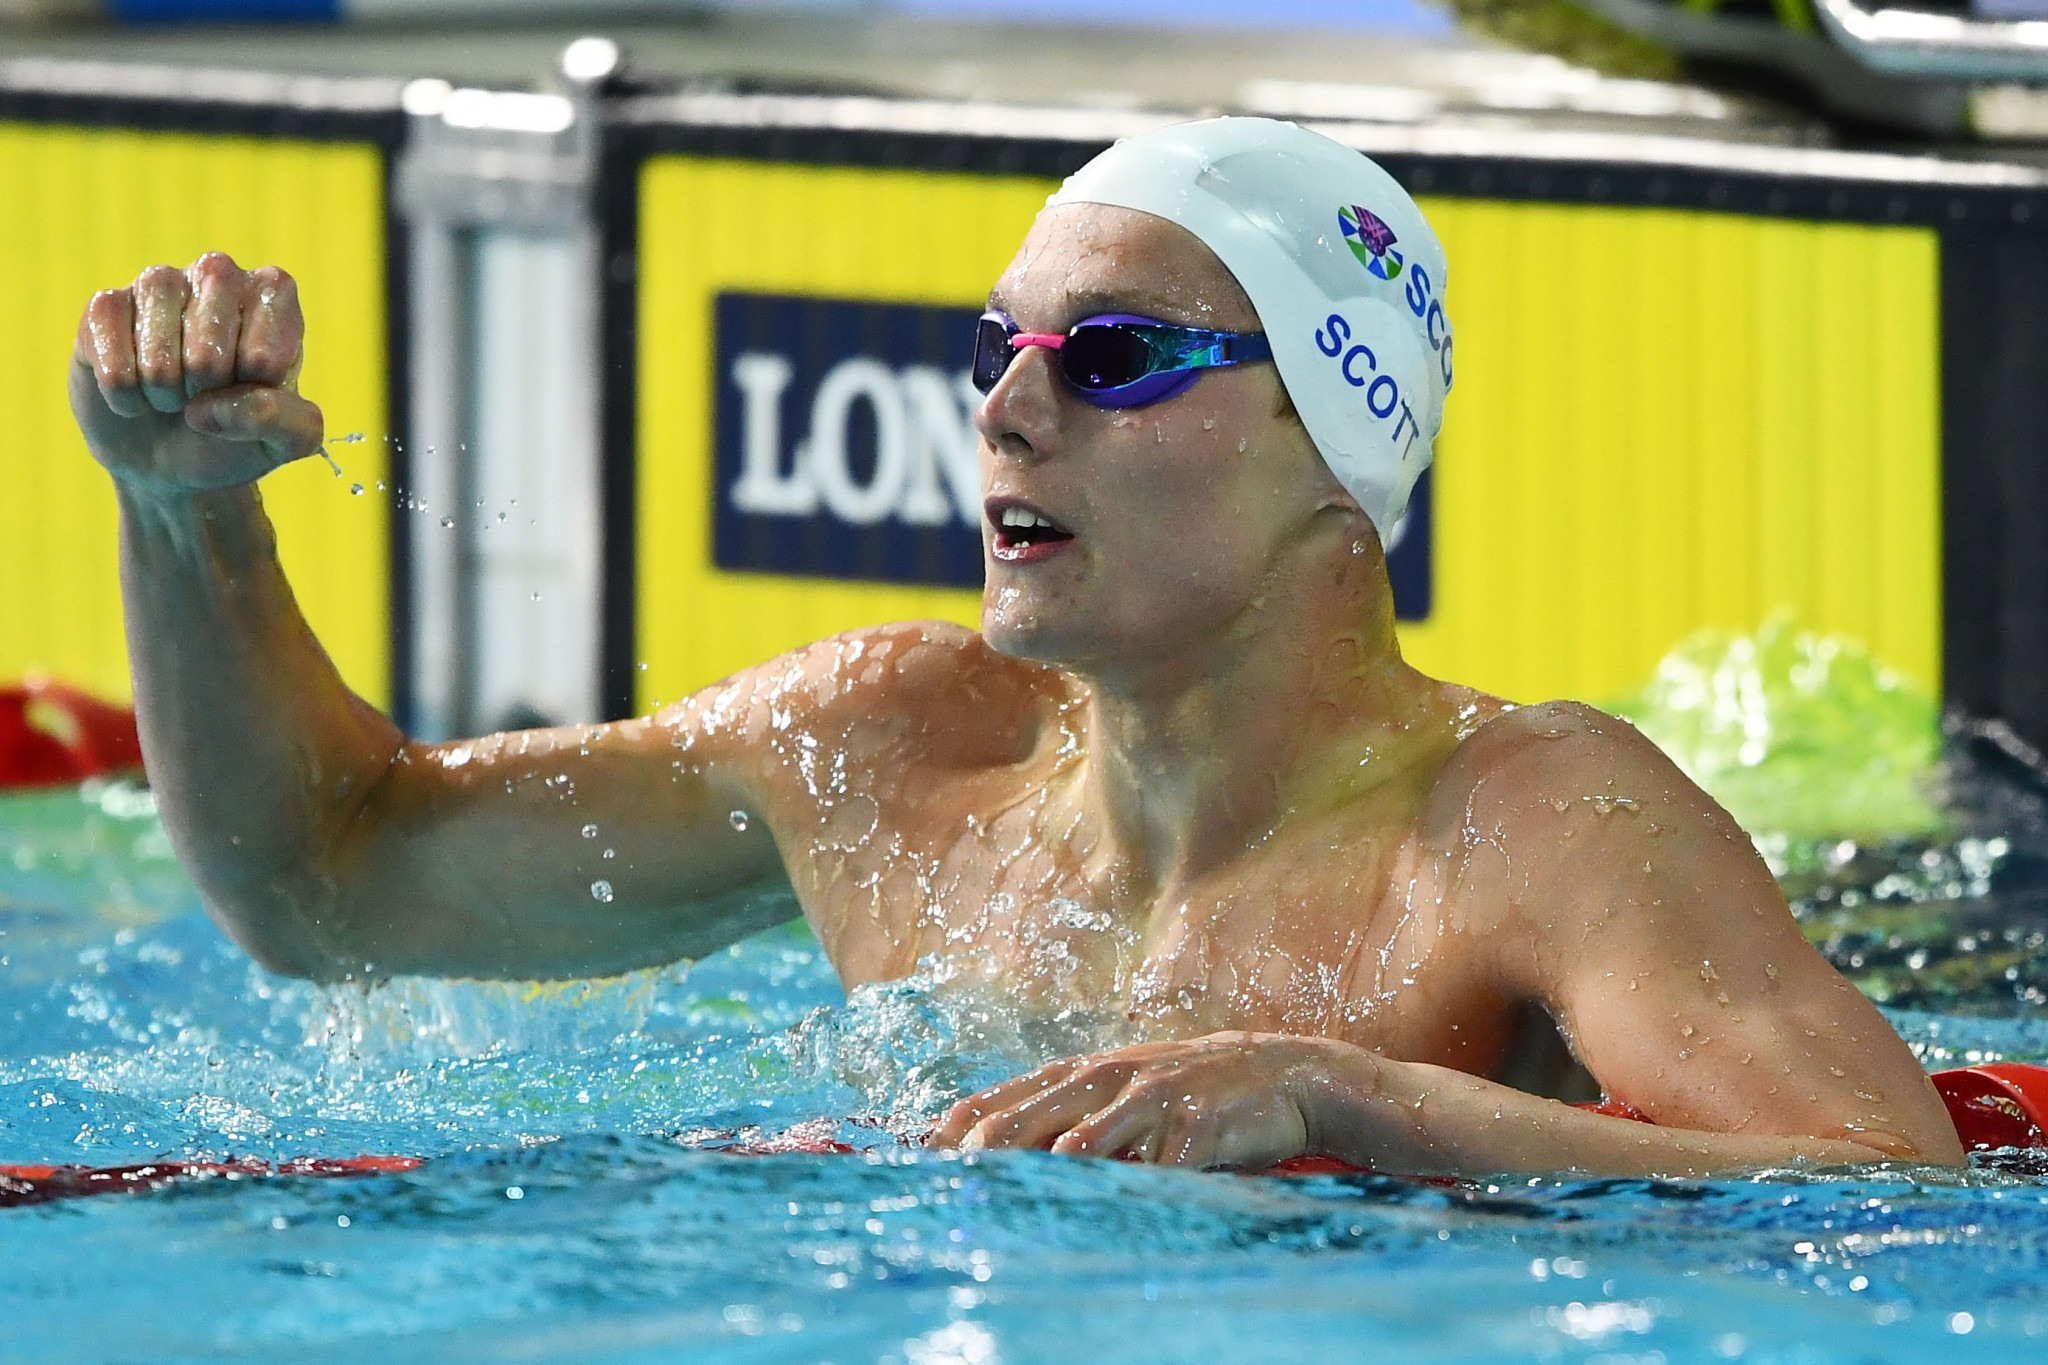 Sensational Scott tears up script with 100m freestyle triumph at Gold Coast 2018